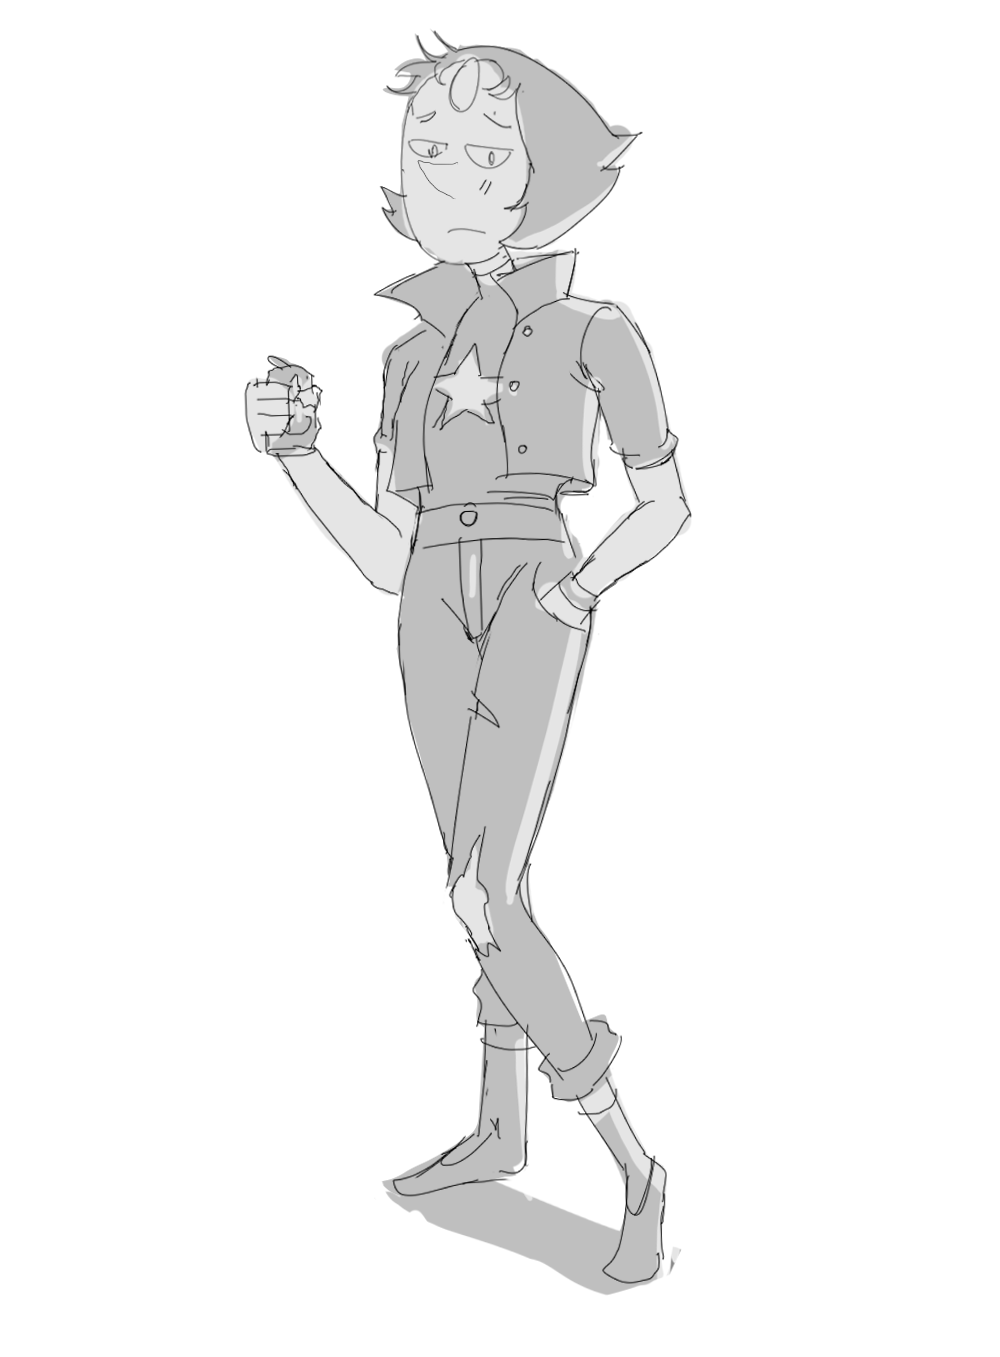 inb4 influx of badpearl fanart i wish i could do more but this is all i have time for